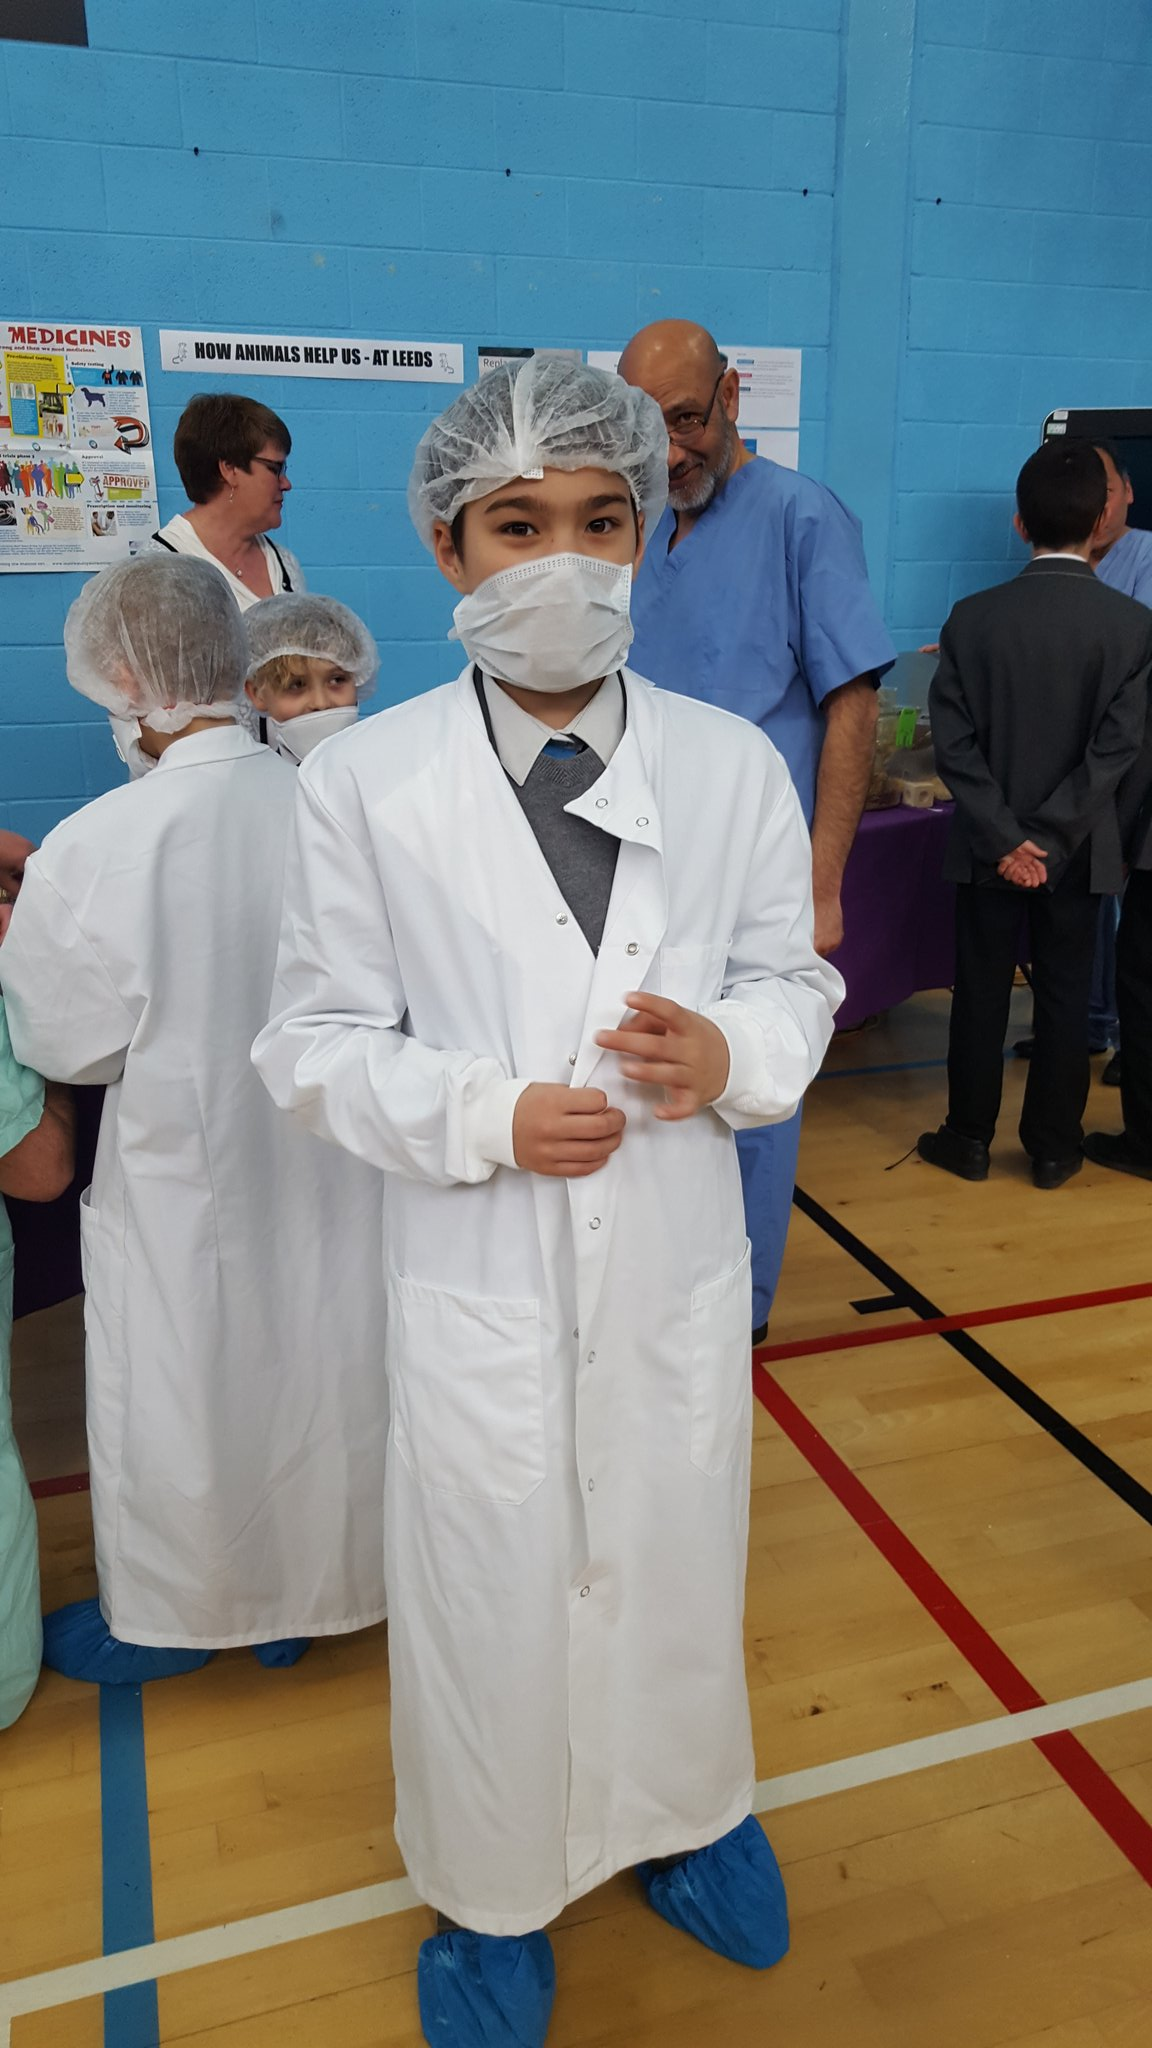 Year 6 scientists at work! #MusicFederation #LFoS17 @STEMatLeeds https://t.co/y3v3doa0NB